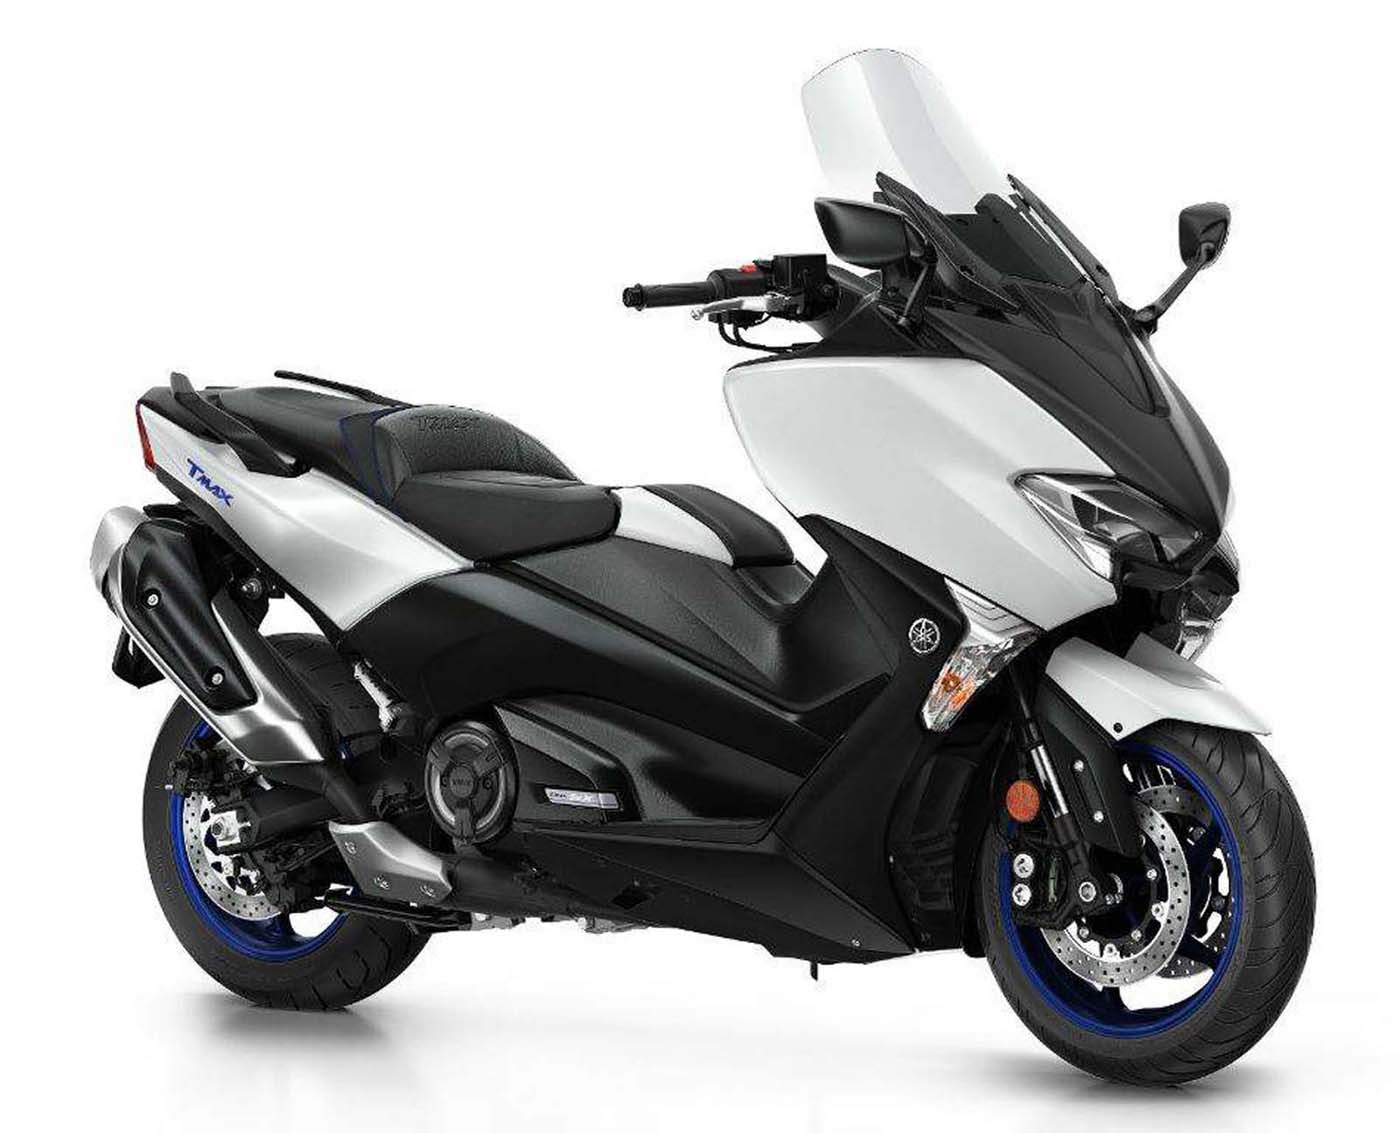 Yamaha TMAX 530SX For Sale Specifications, Price and Images